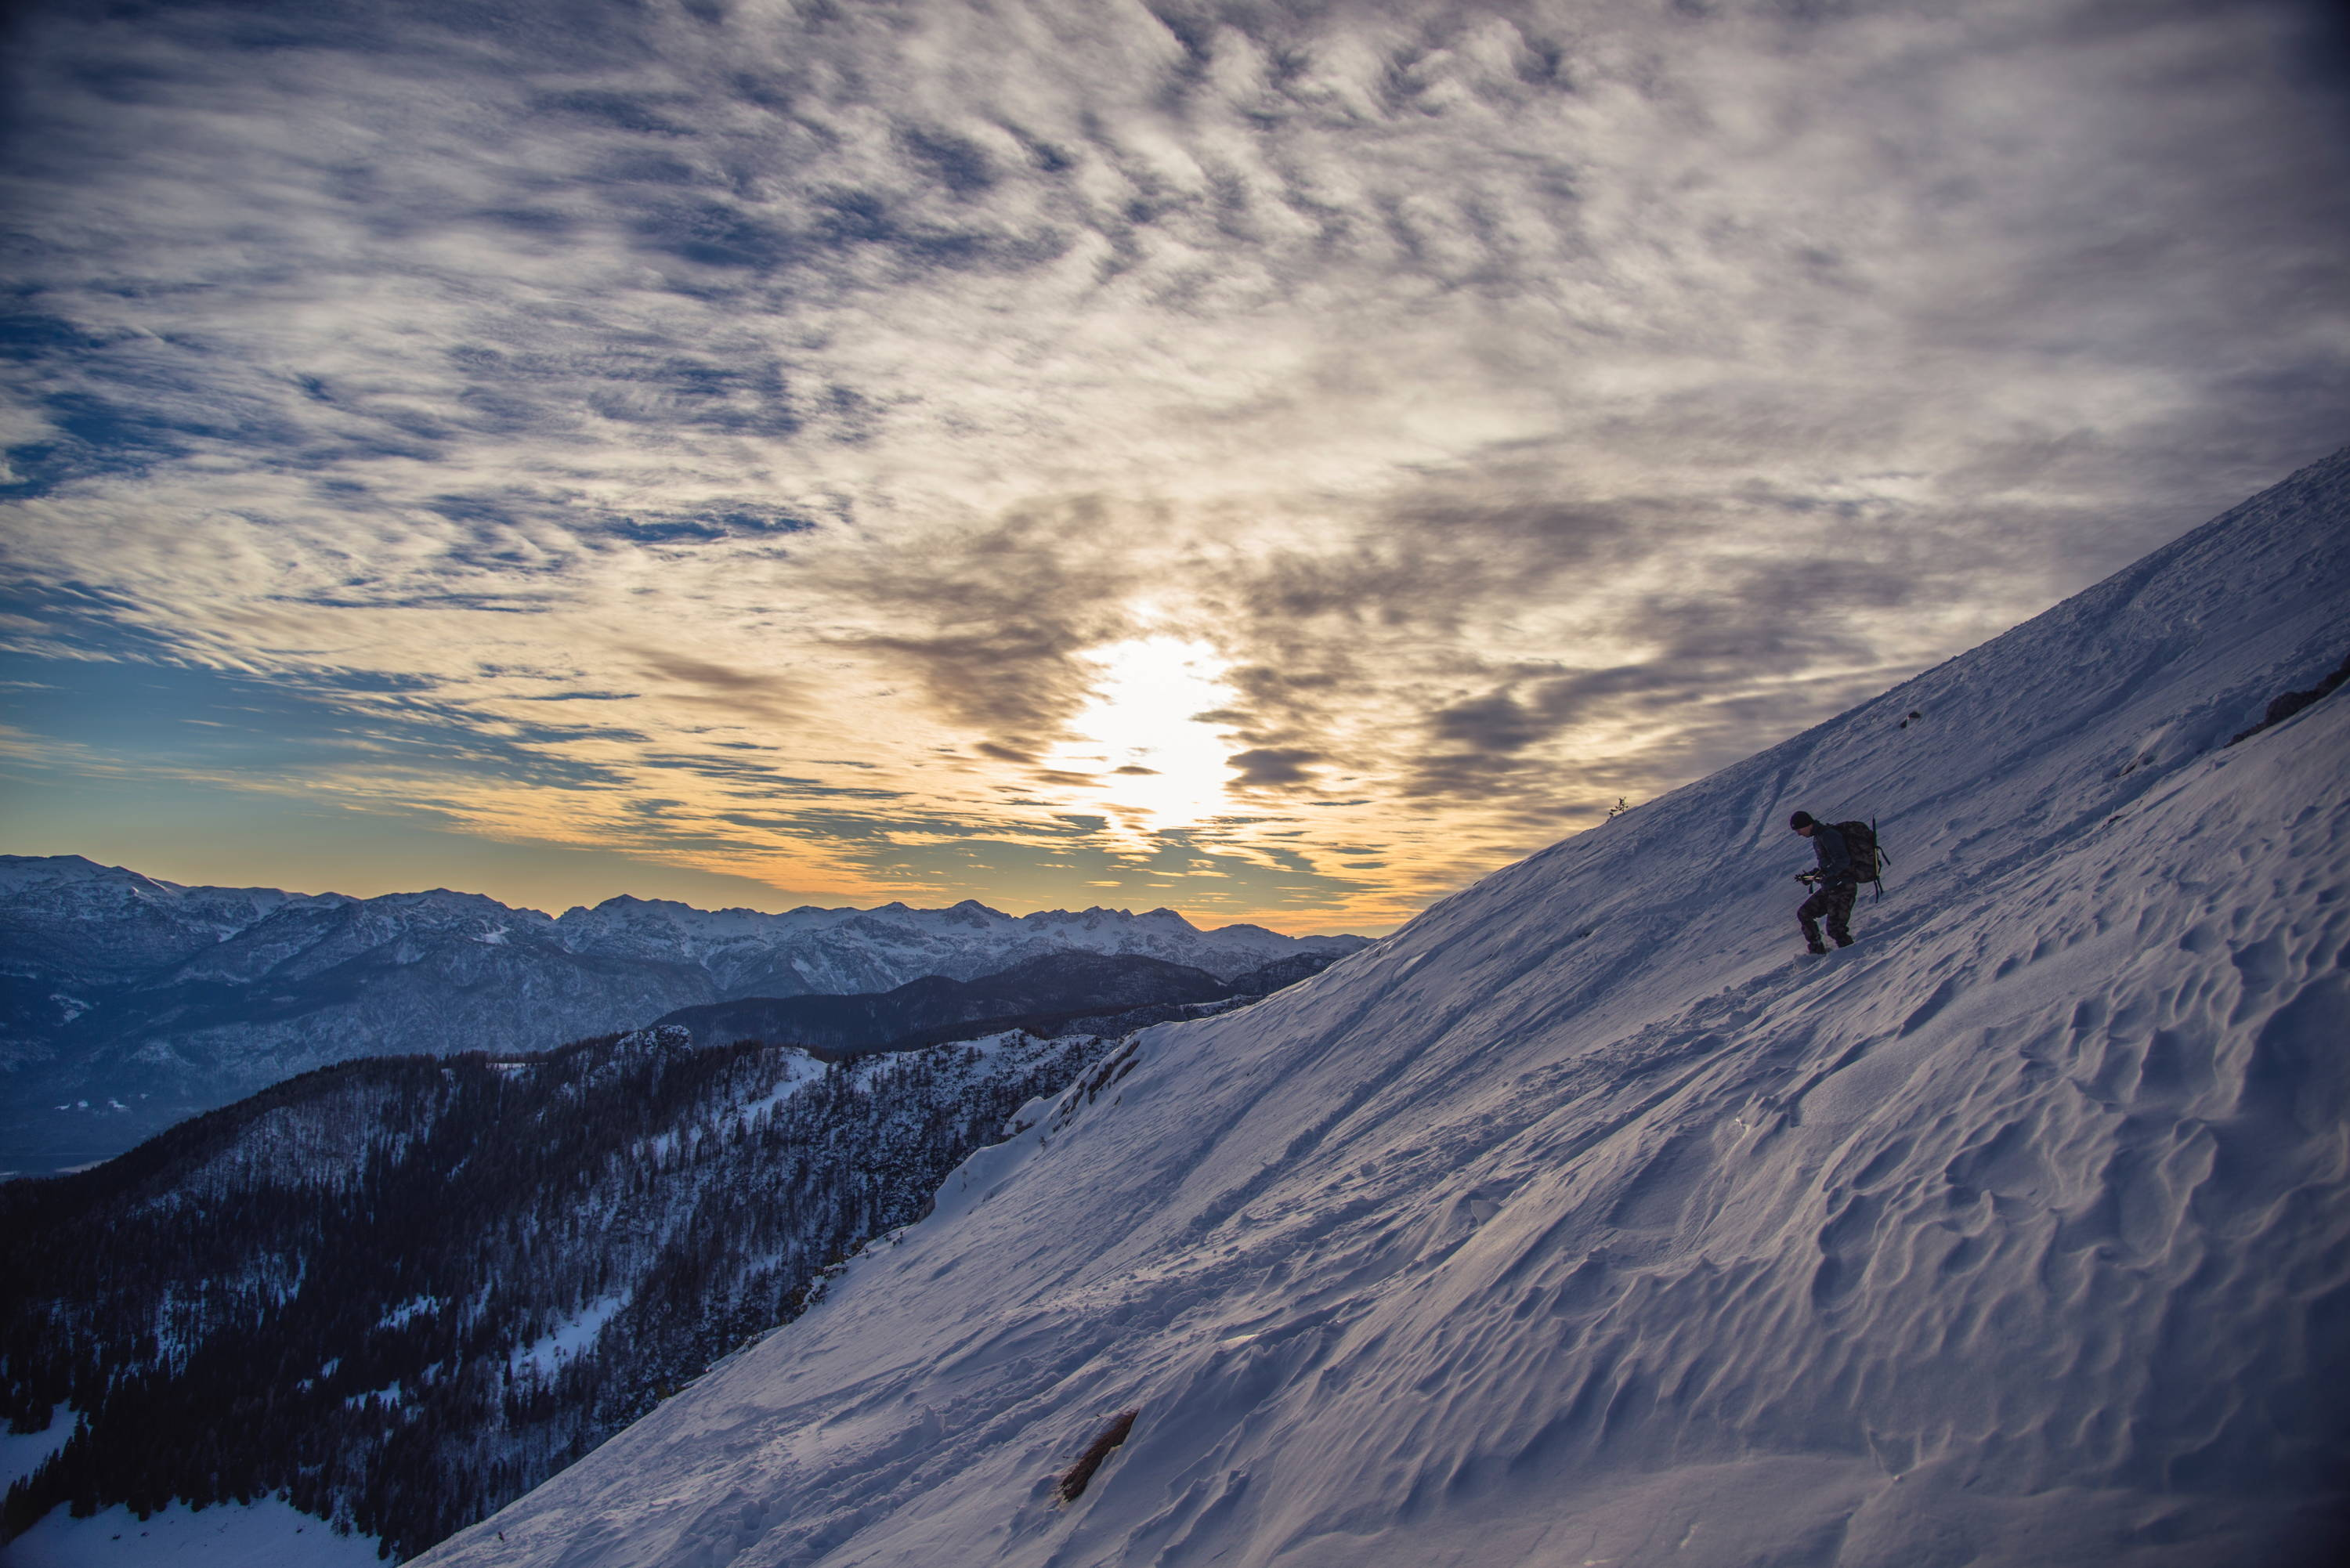 Preparing for High-Altitude Travel: How to Deal with Altitude Sickness. Man descends down snow-capped mountain with sun setting over full range in the background.